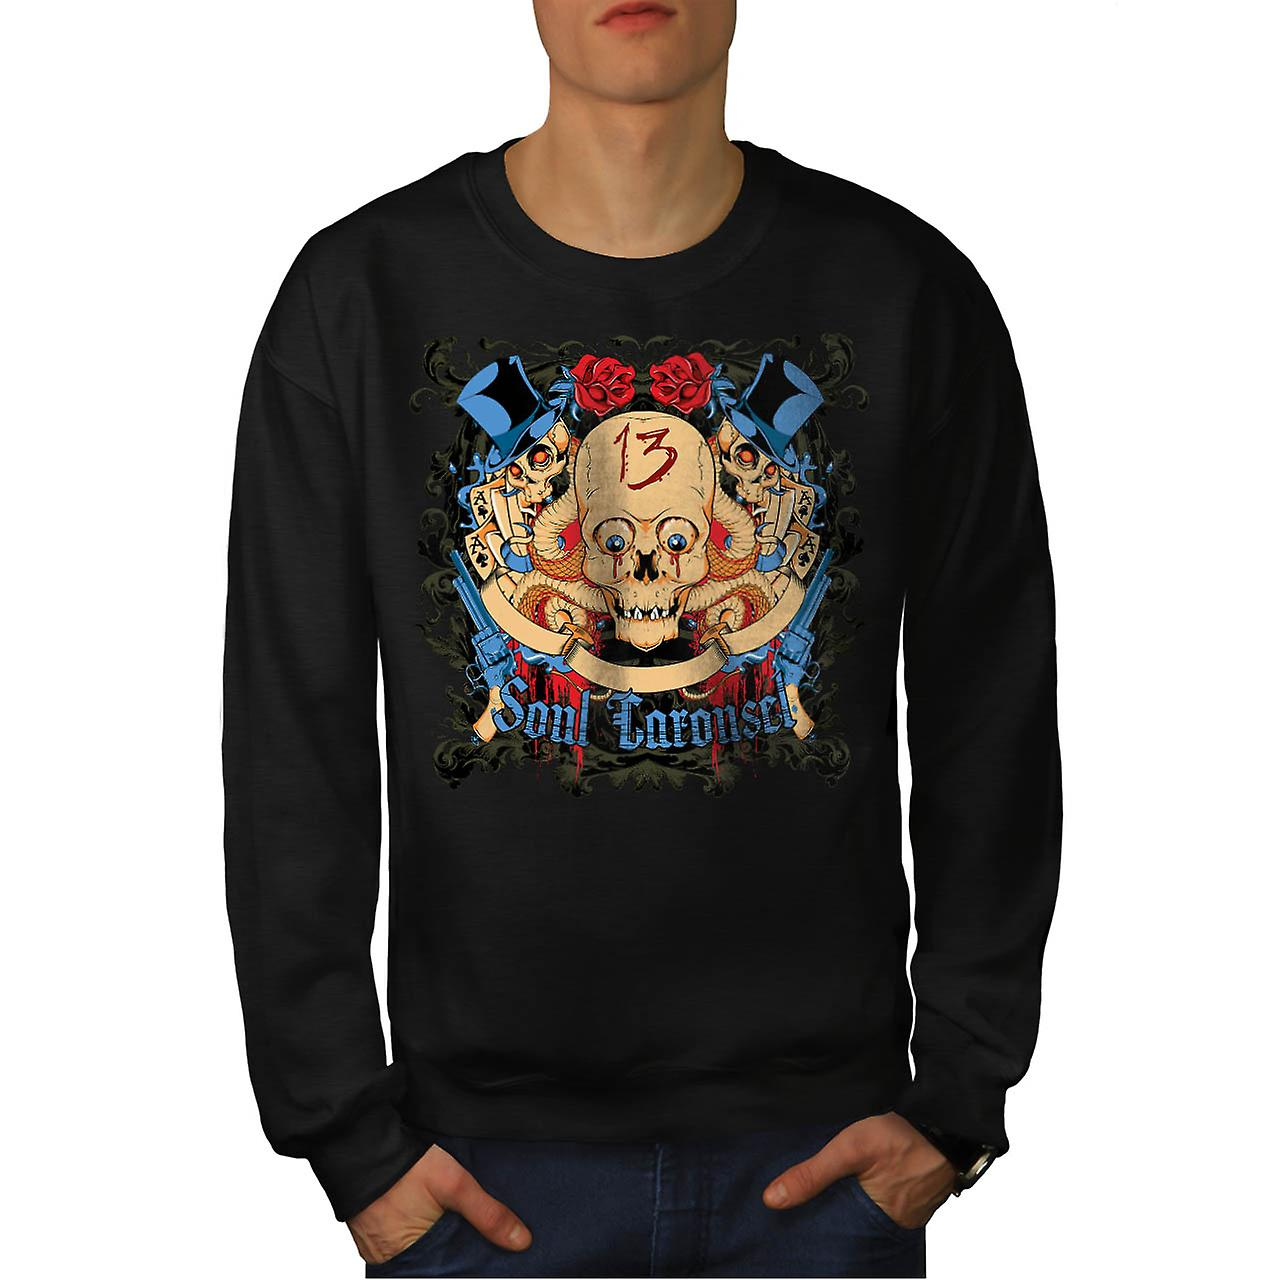 Soul Carousel Skull Terror Ride Men Black Sweatshirt | Wellcoda